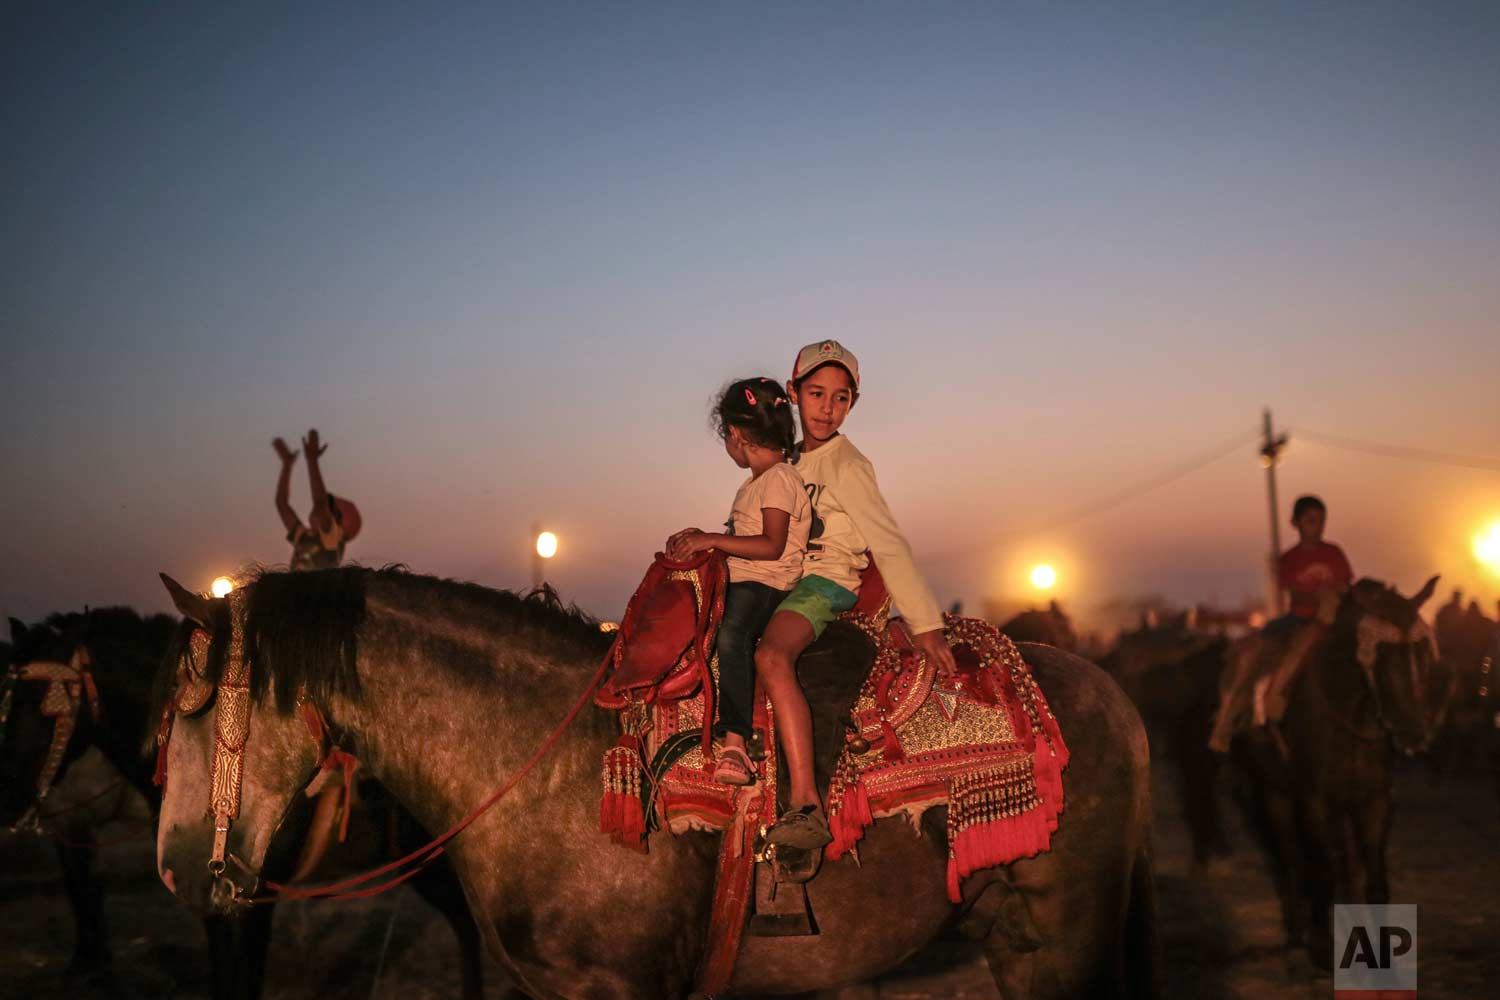 In this Thursday, Aug. 17, 2017 photo, children play on horses, after the end of Tabourida, a traditional horse riding show also known as Fantasia, in Mansouria, near Casablanca, Morocco. (AP Photo/Mosa'ab Elshamy)